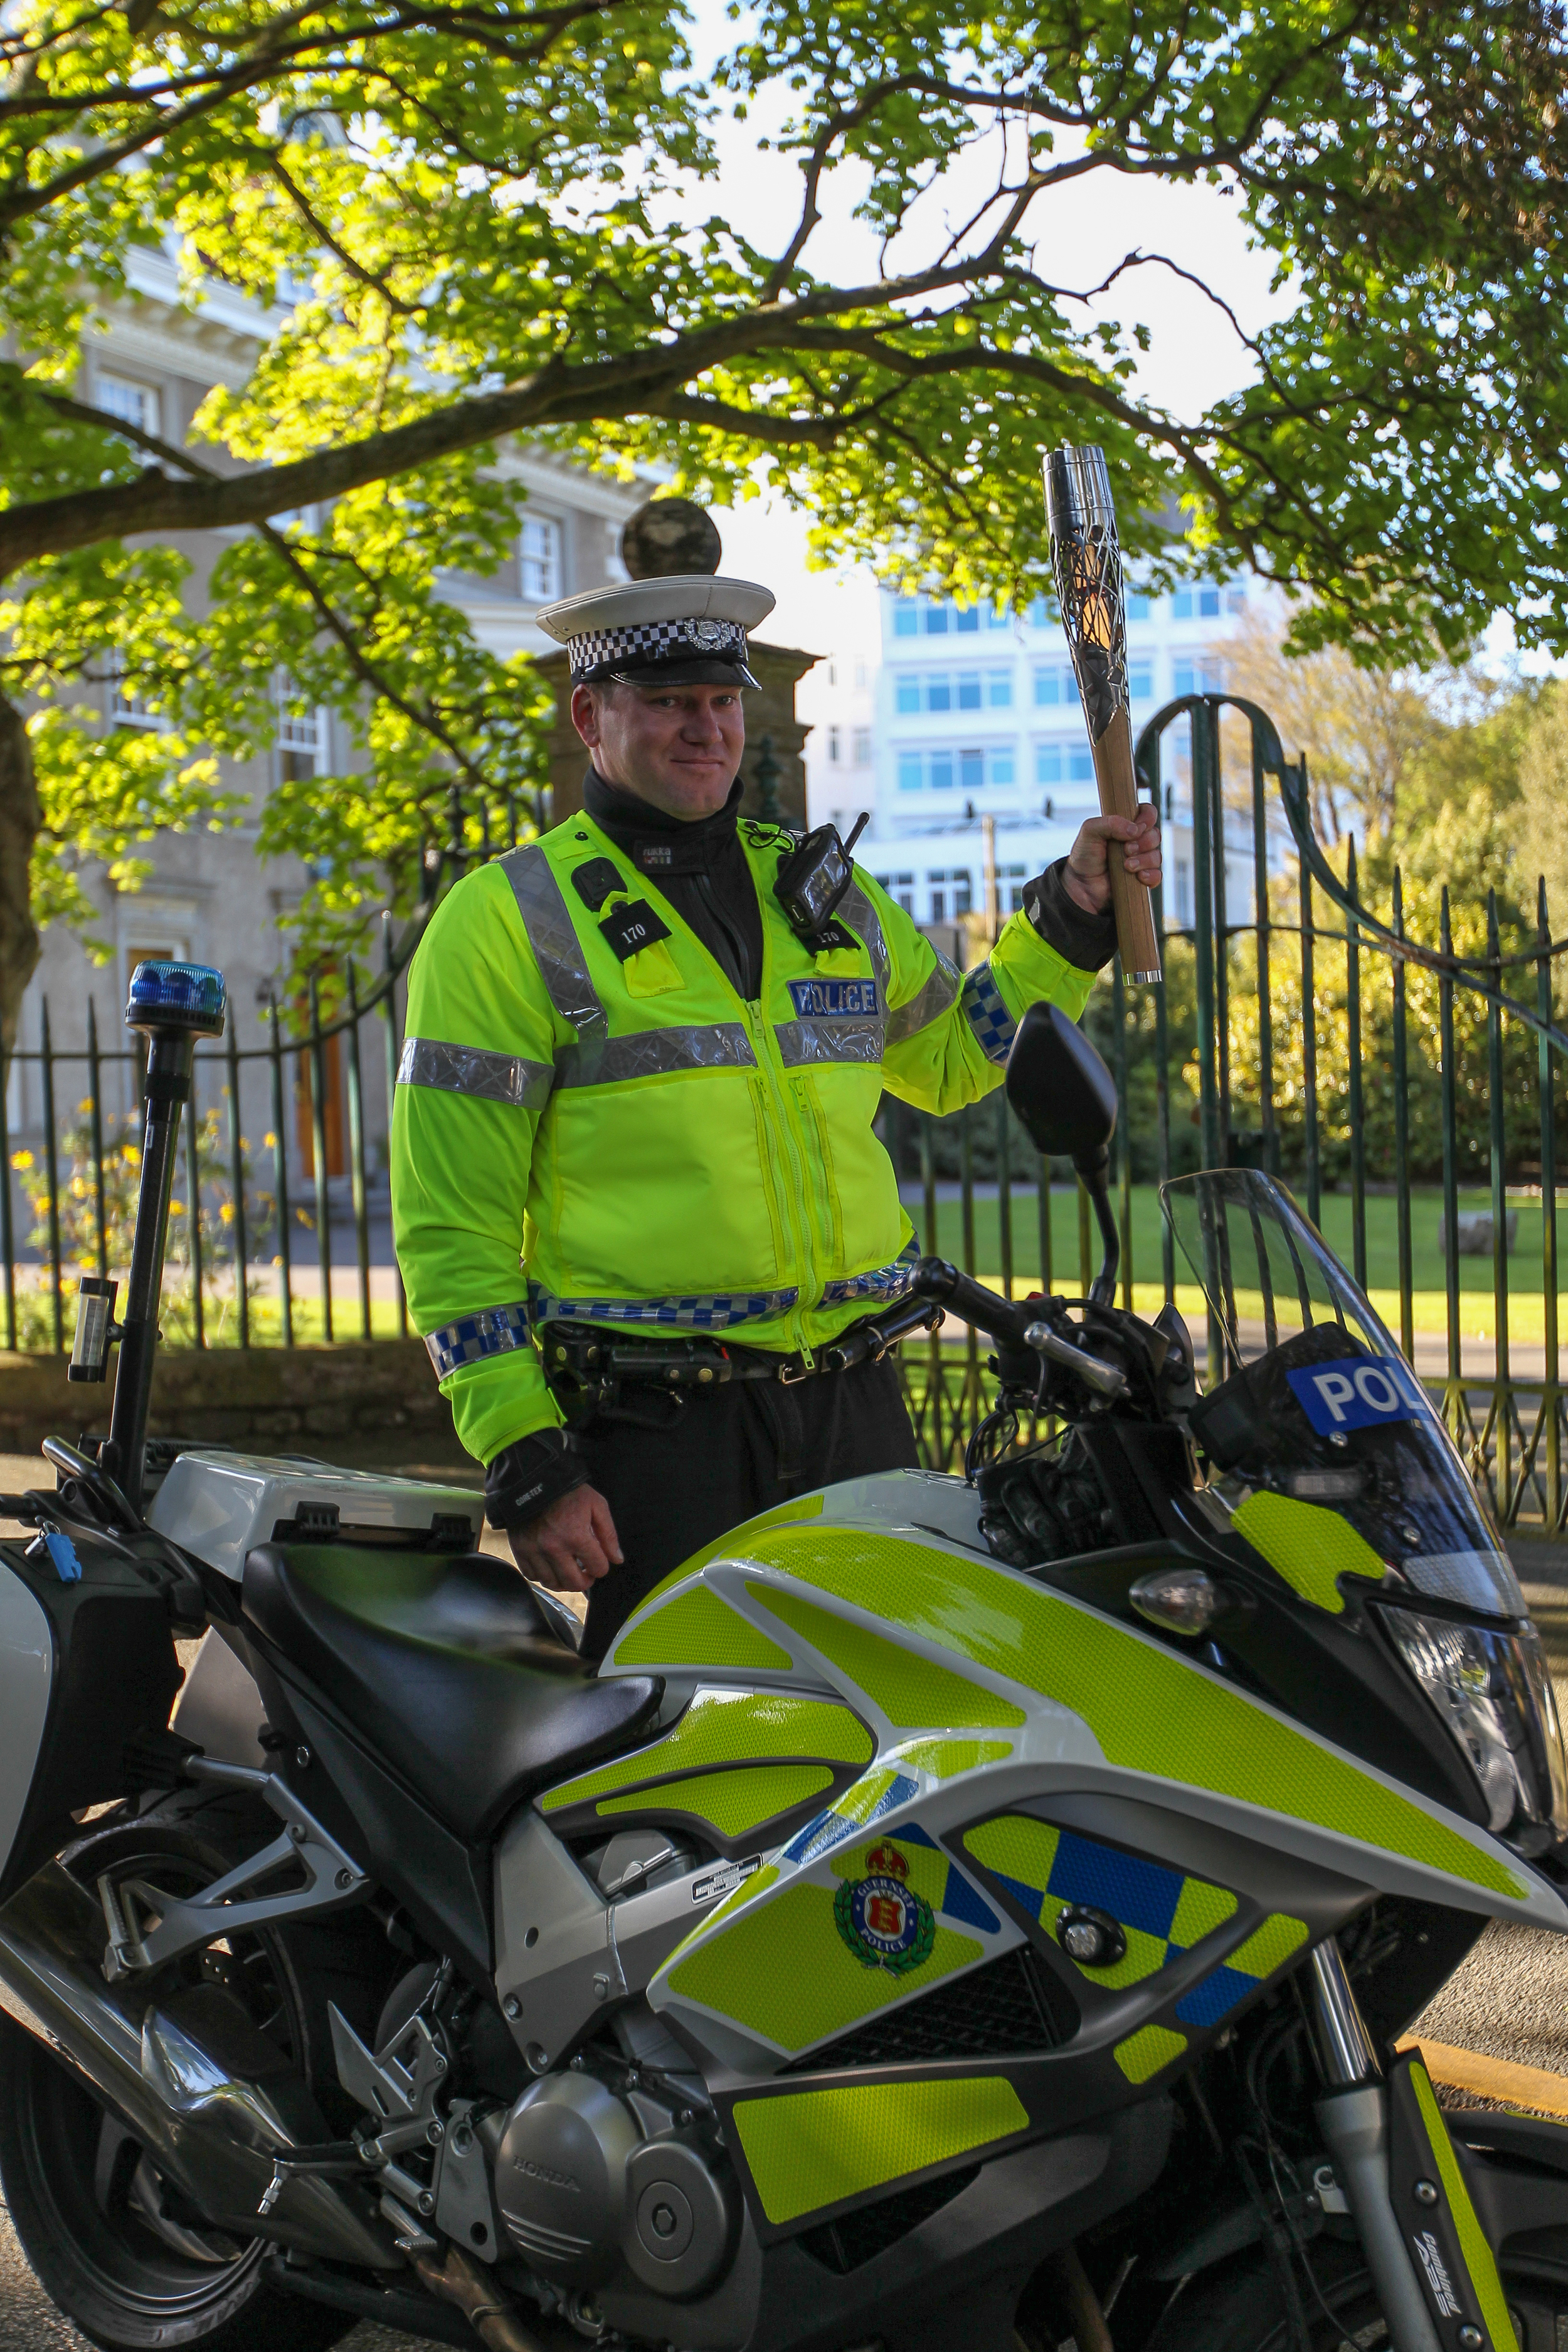 The Guernsey Police supported the visit of the Queen's Baton Relay ….